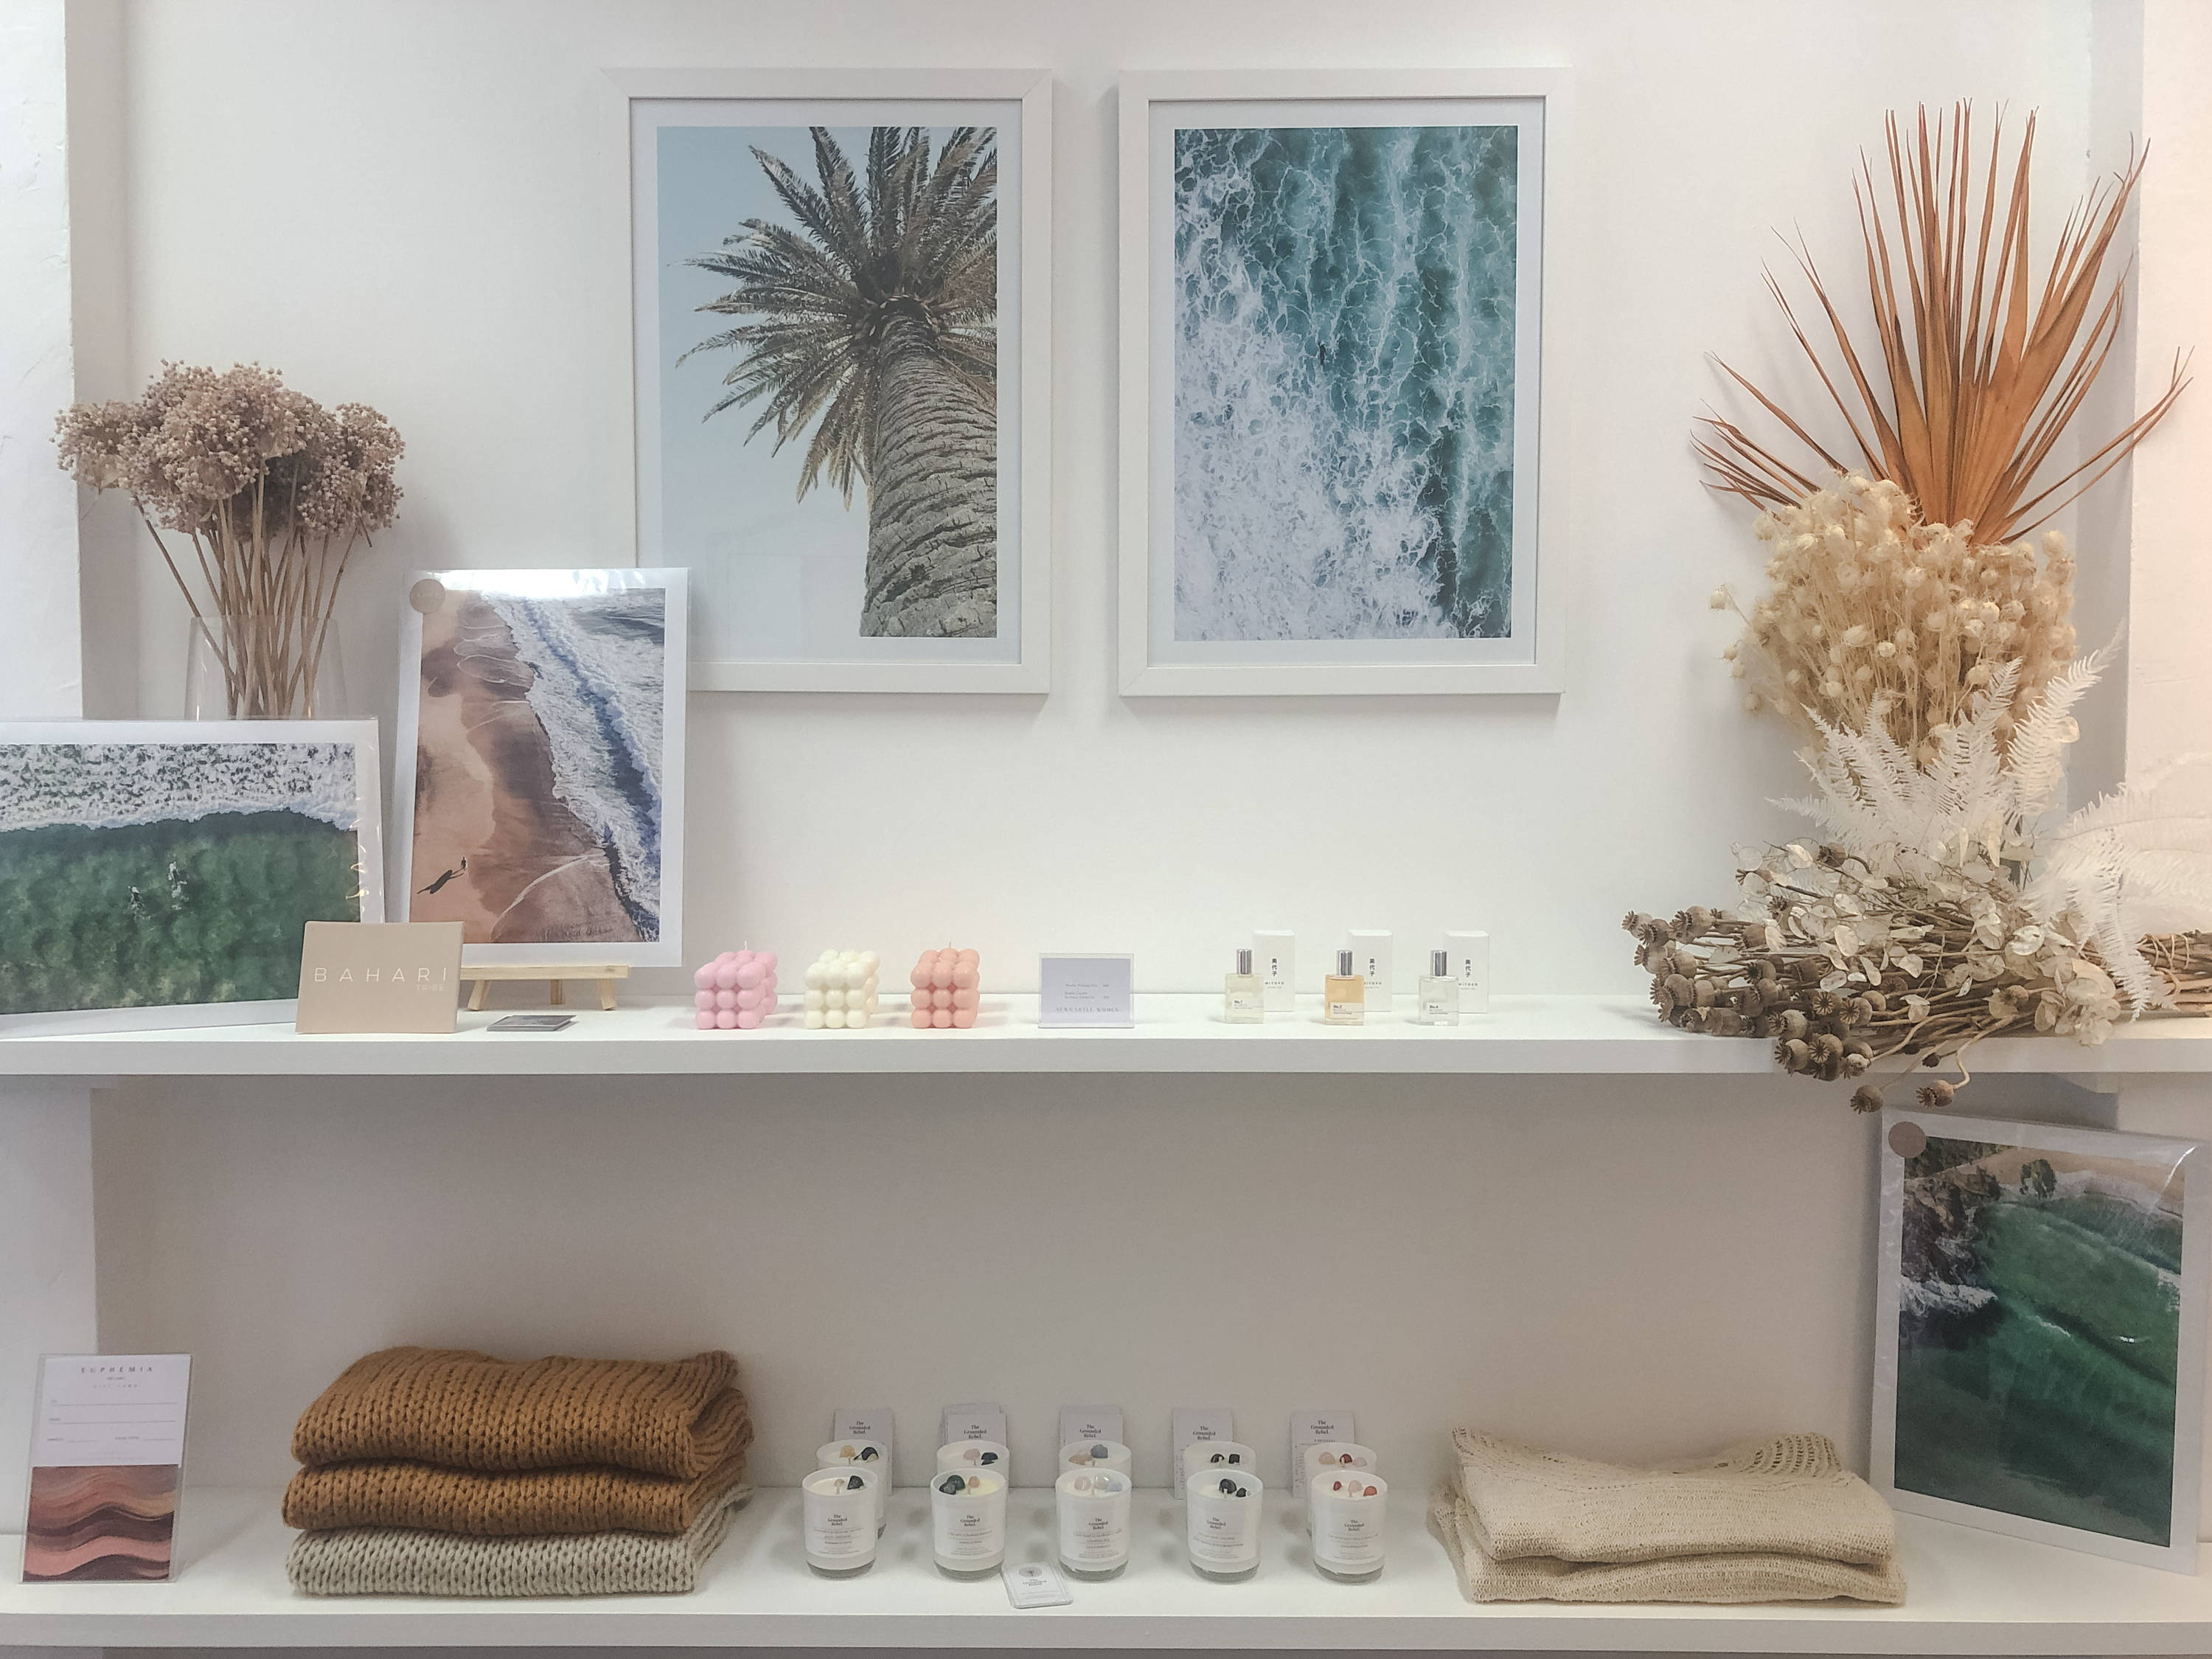 Beach Drone Photography Prints for the home by Jemma Darling.  Avaliable instore at Euphemia The Label Newcastle Australia